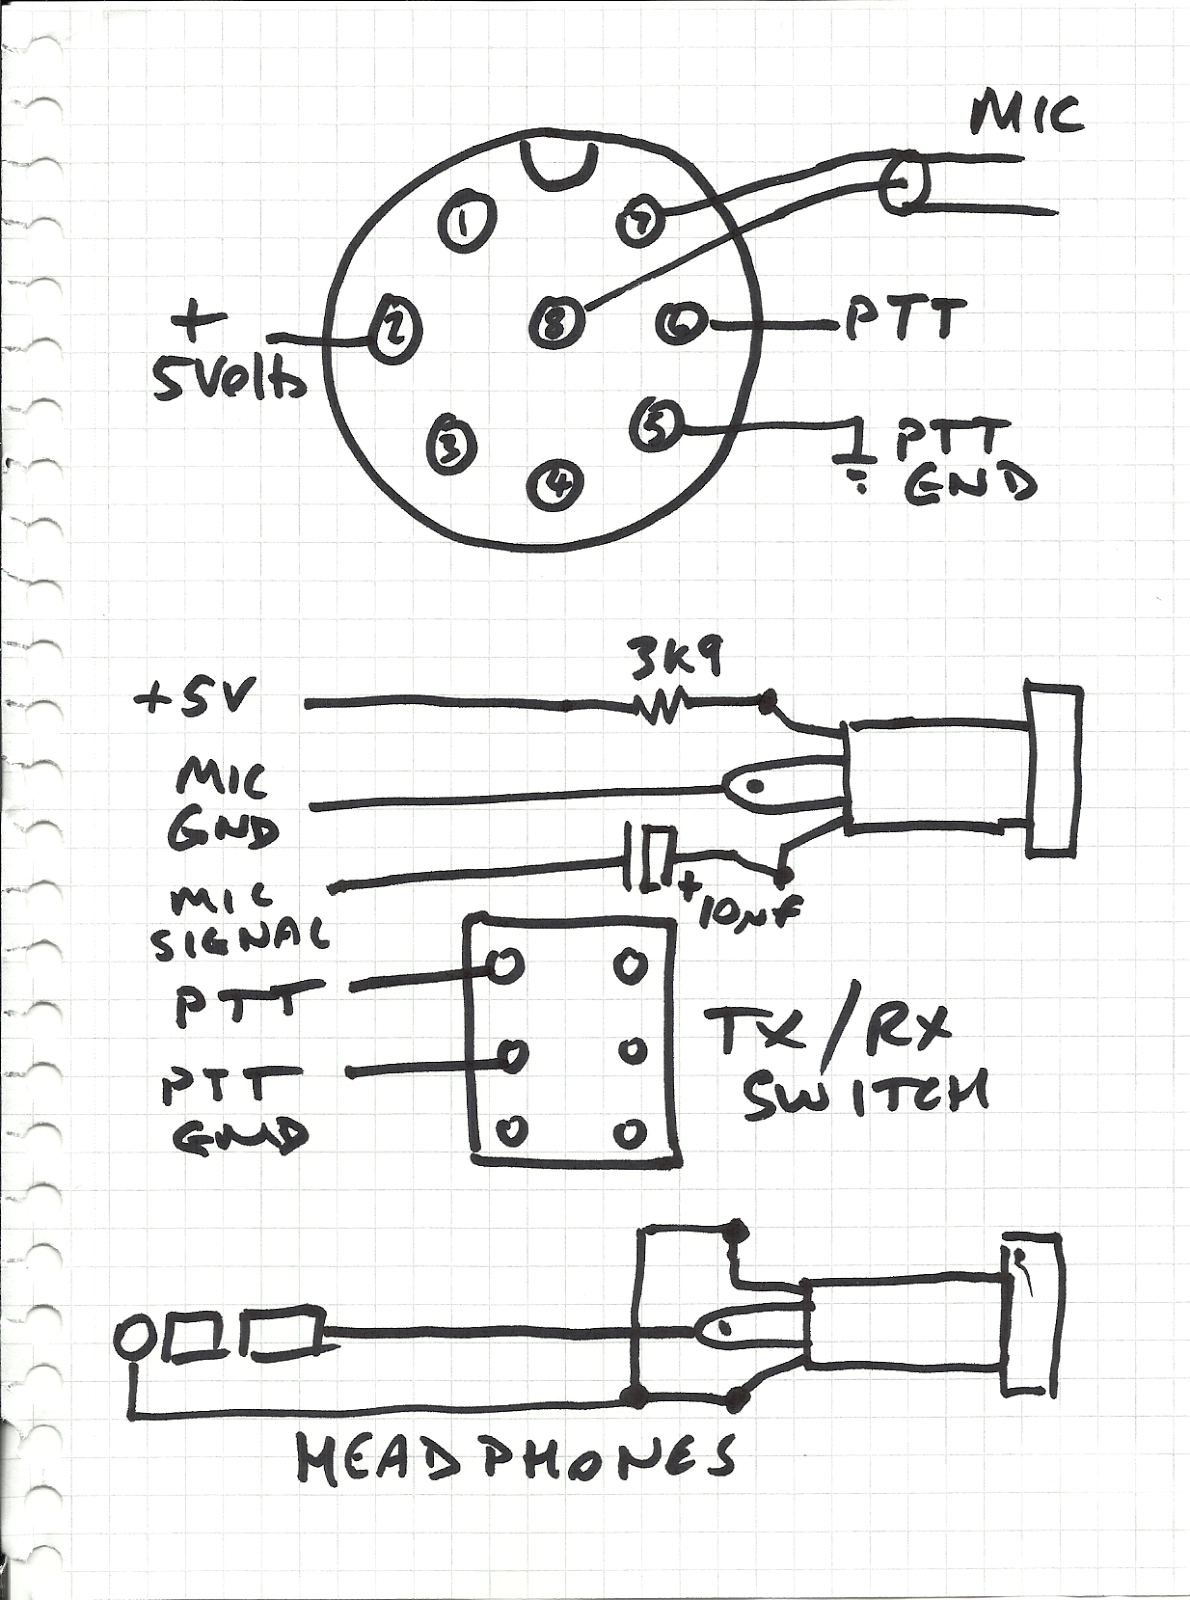 wiring diagram motorola rib box to radio